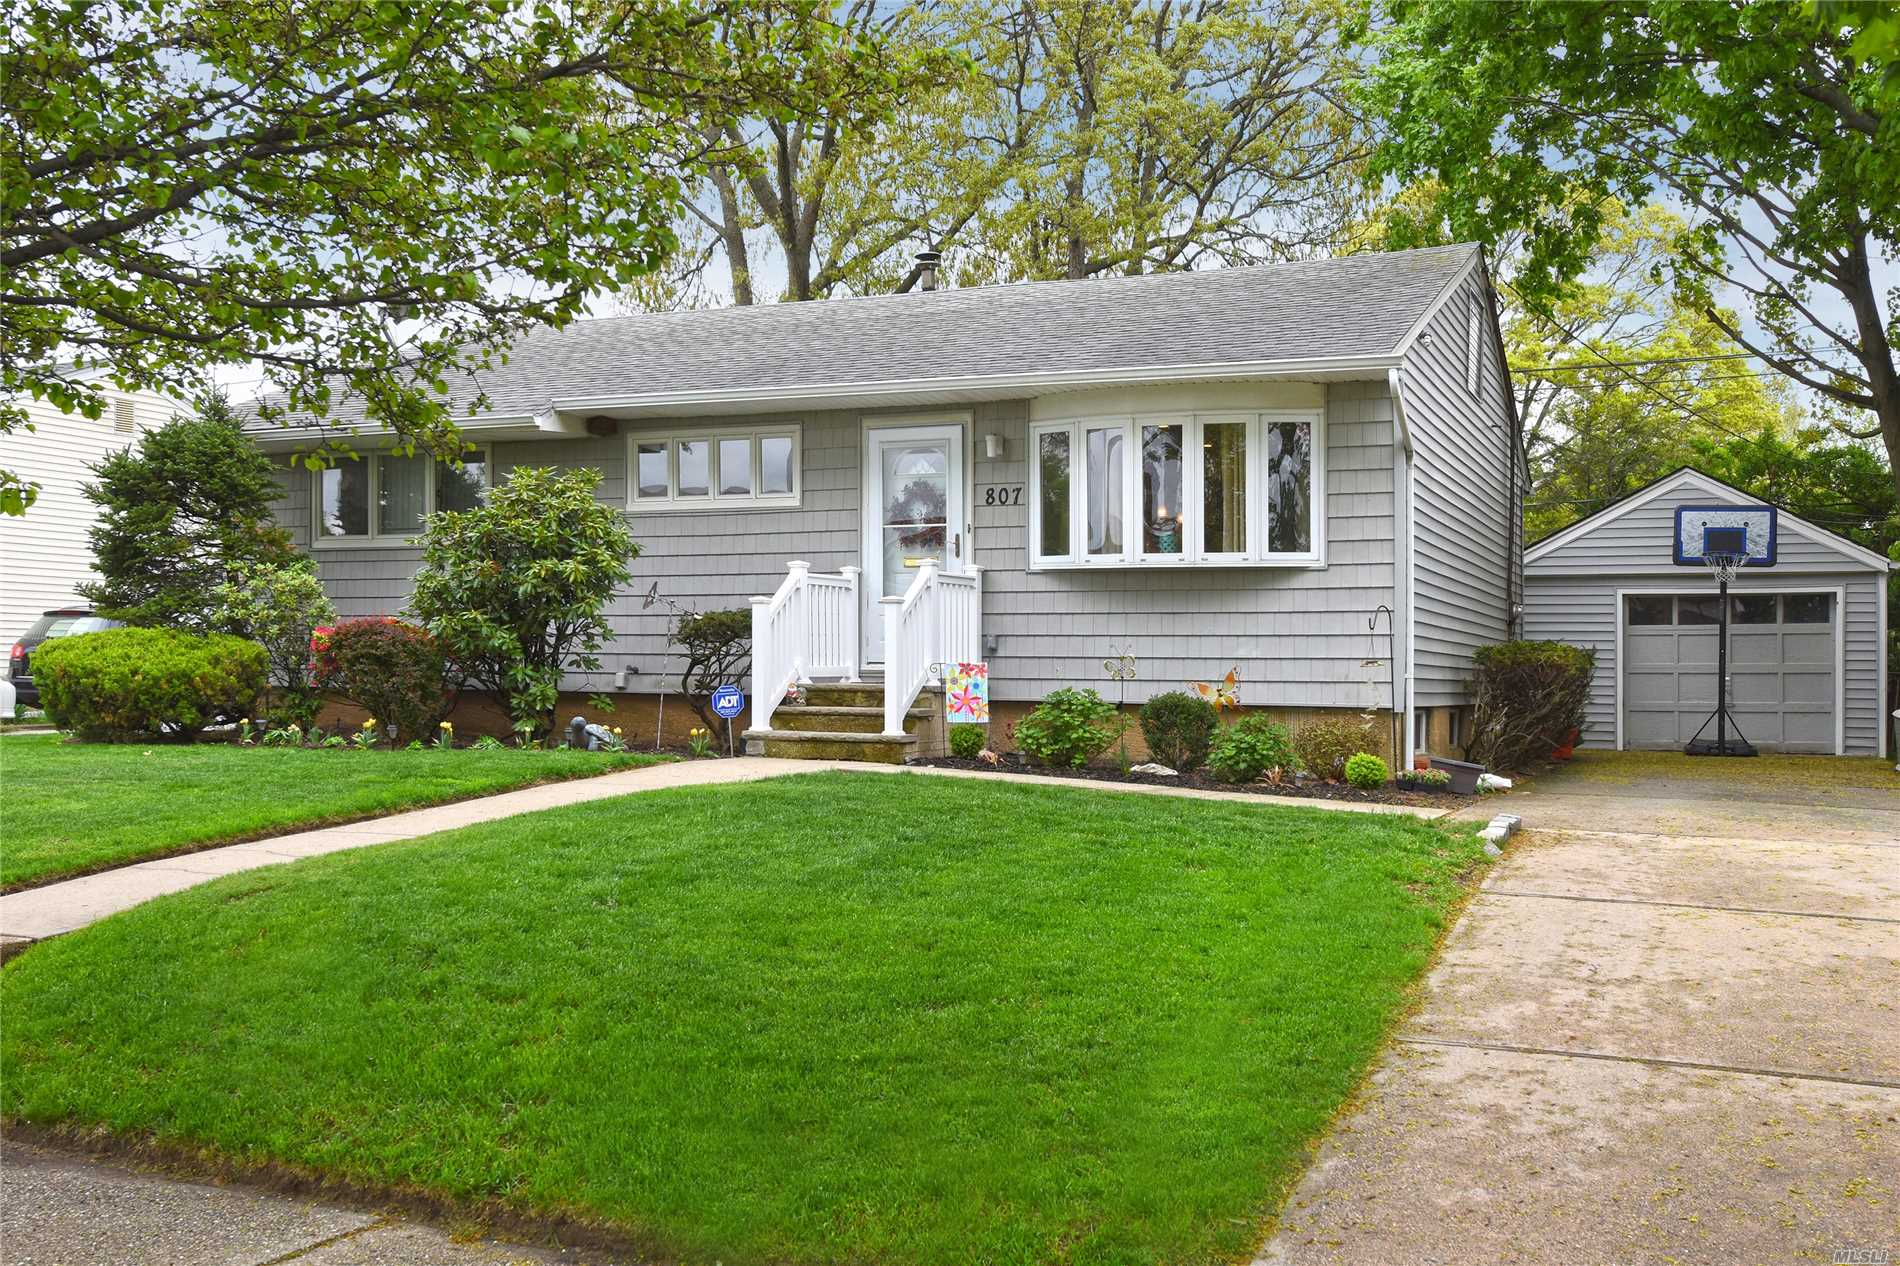 Mint Ranch Located In The Heart Of Franklin Square, School District 13, New Large Extended Eat In Kitchen, 3 Bdrm's, 1 1/2 Bth's, Wood Flrs Thru-Out, New Central AC, Updated Heating System, Lrg Fenced In Backyard, Roof Is Less Then 10 Yrs Old, New Wood Door's And Moldings.